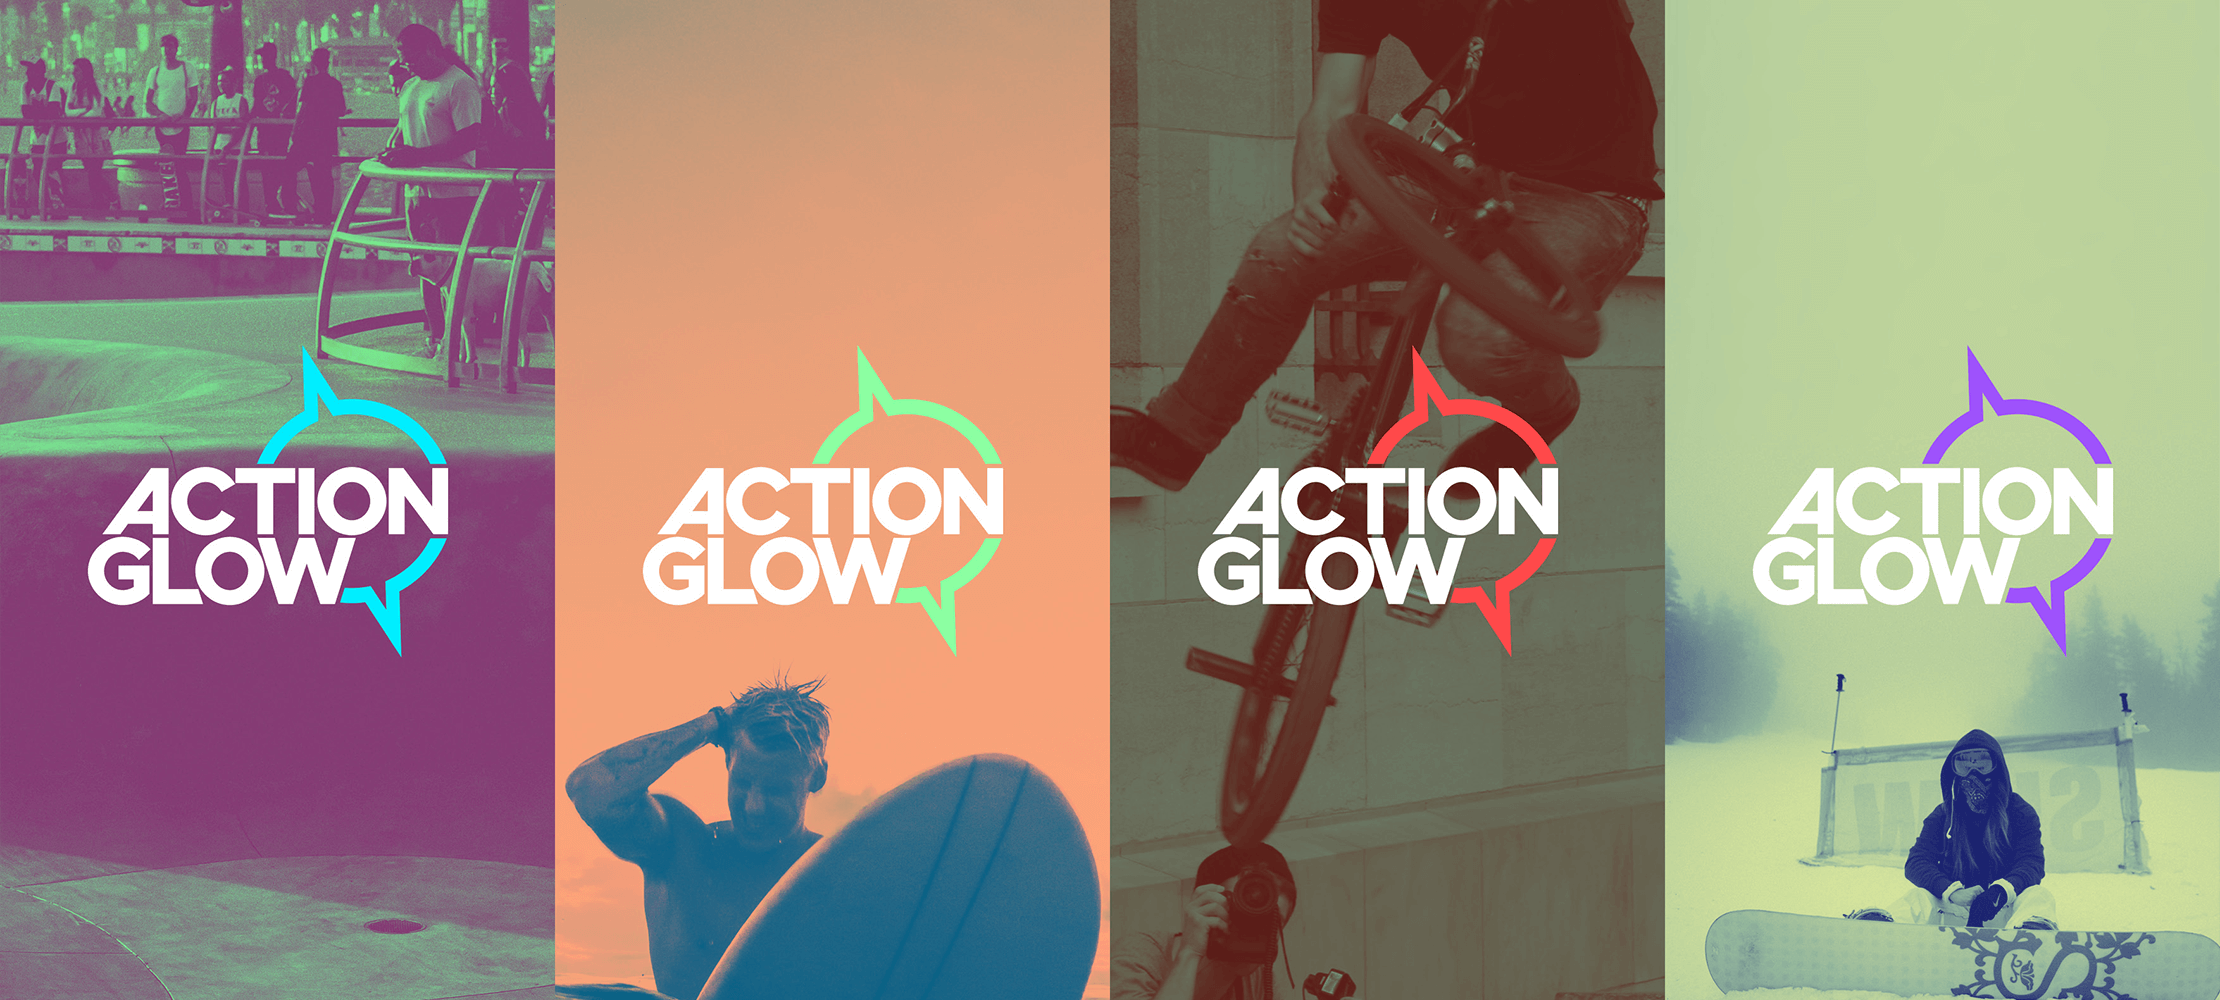 actionglow logo in multiple colors